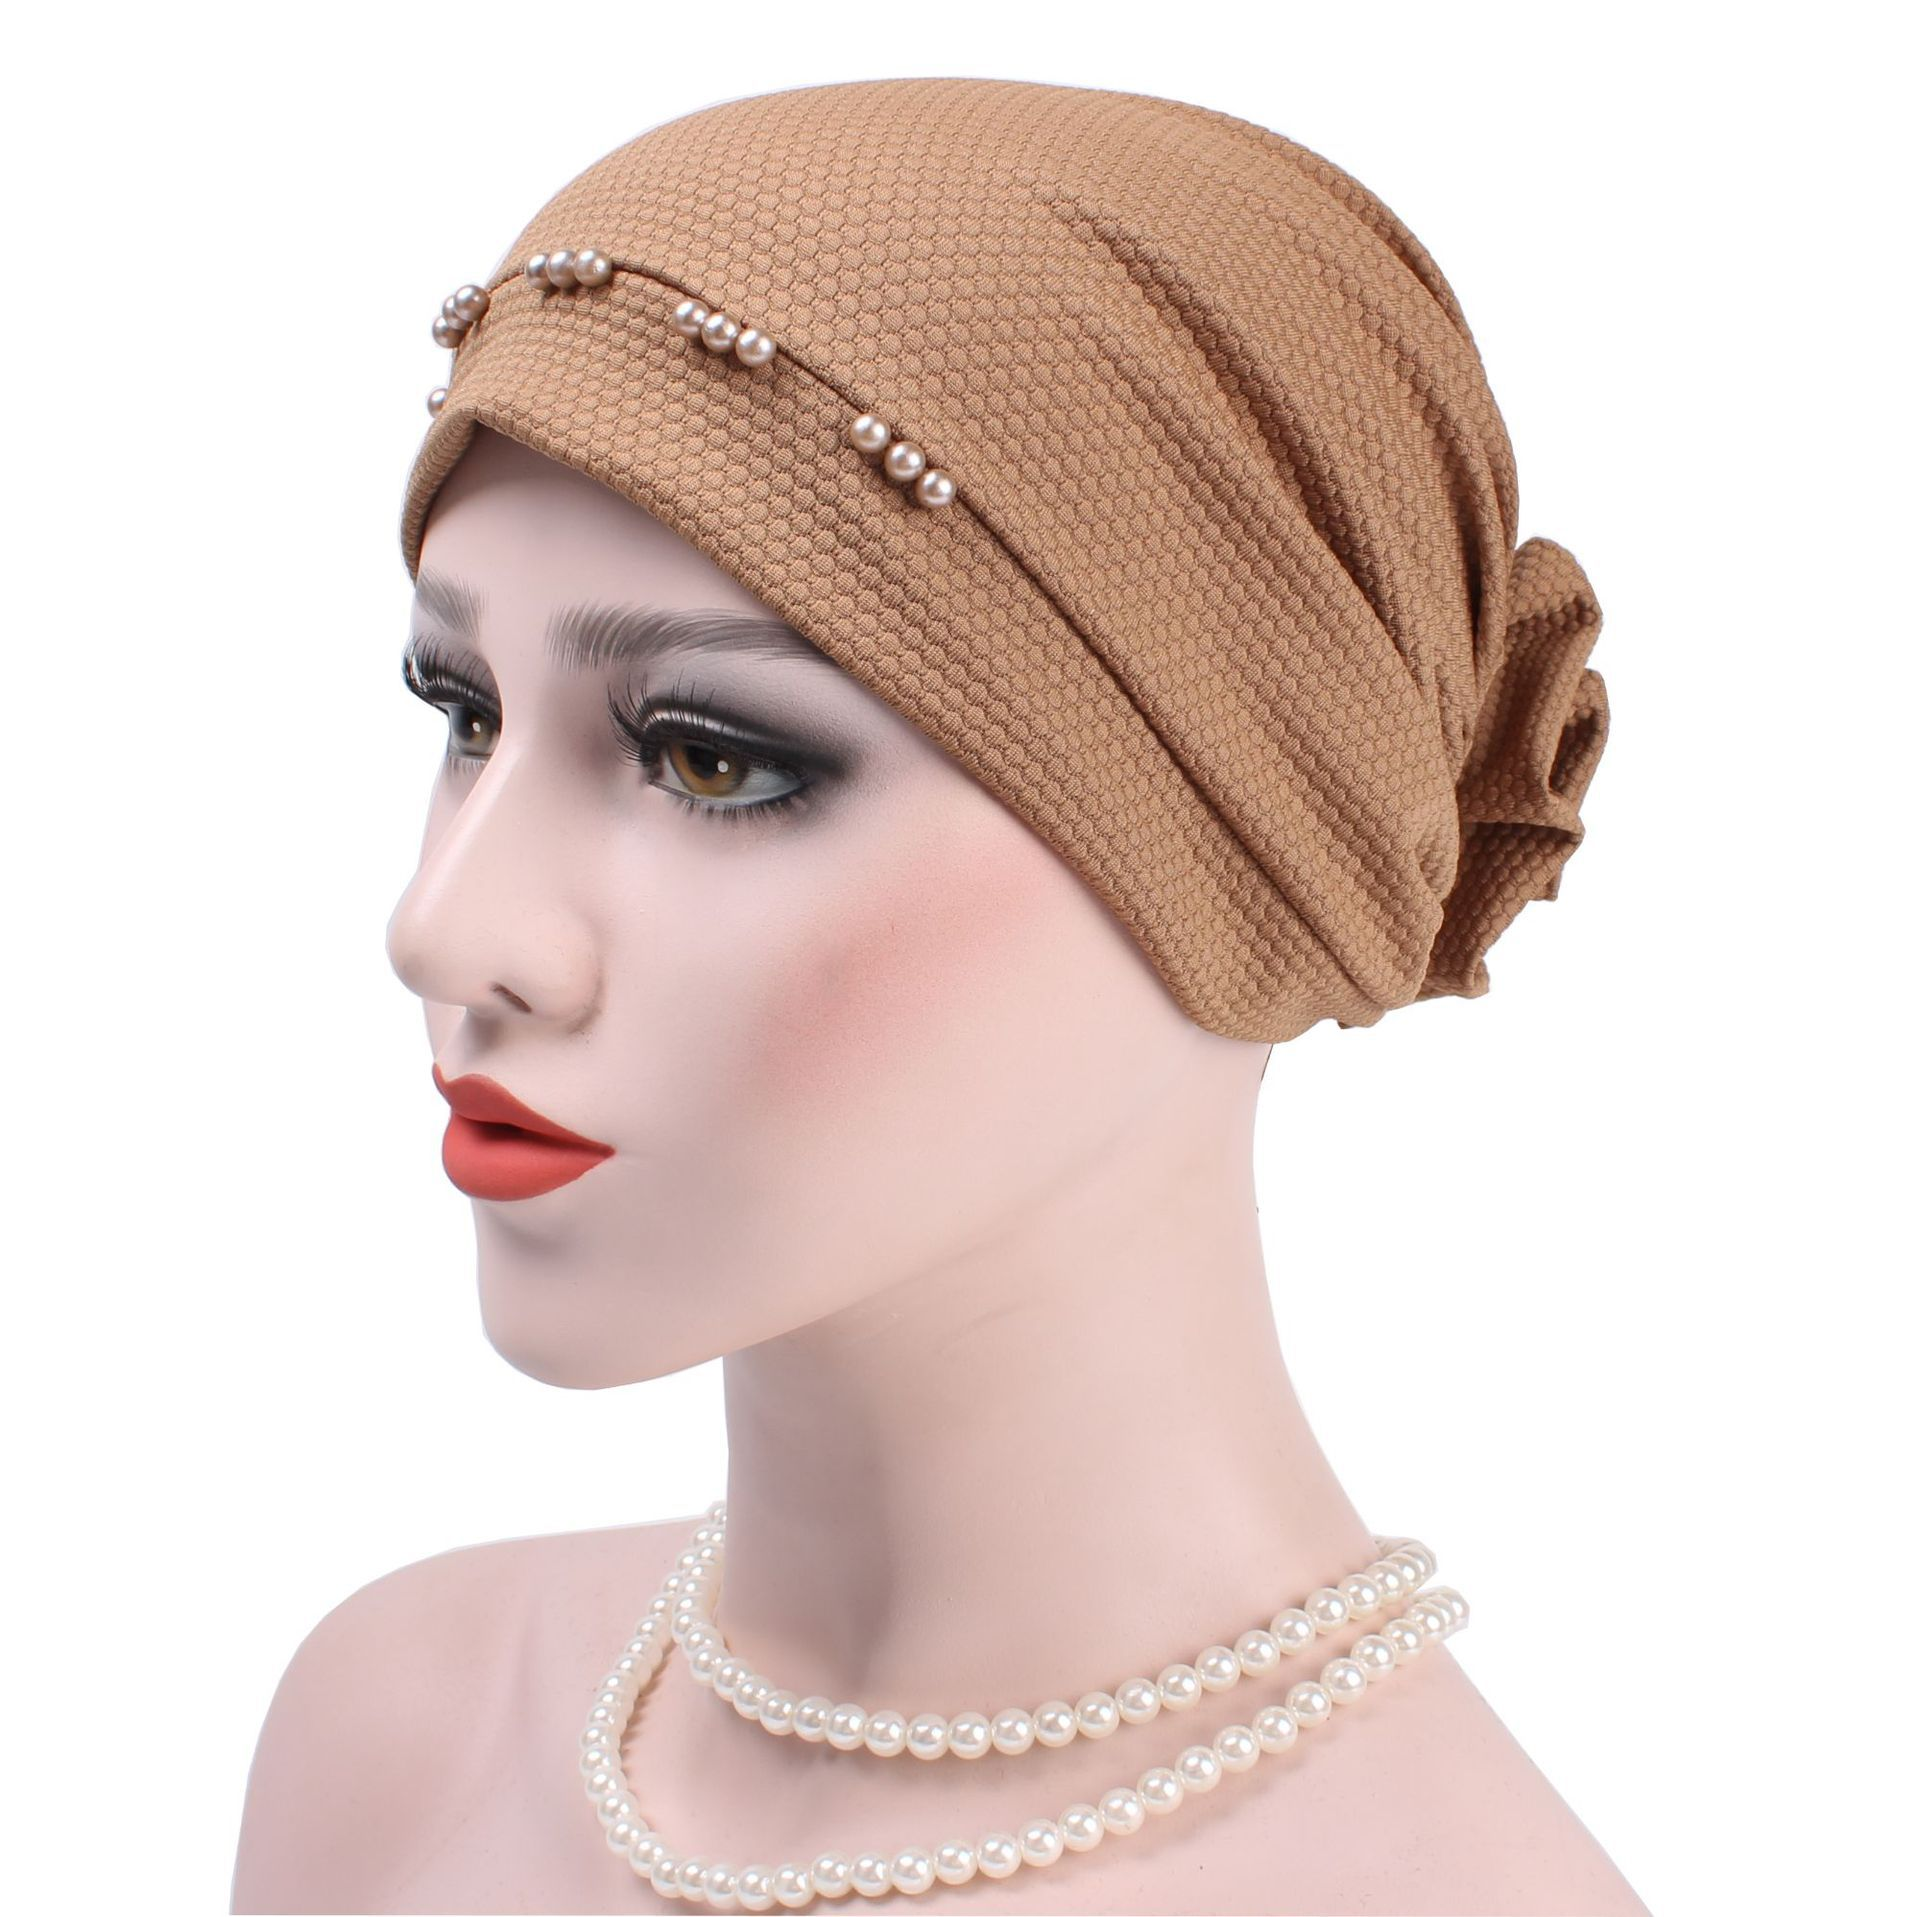 Women Flower Muslim Beanies Hats Pearl Turban Accessory Bandana Hair Cover Chemotherapy Hats